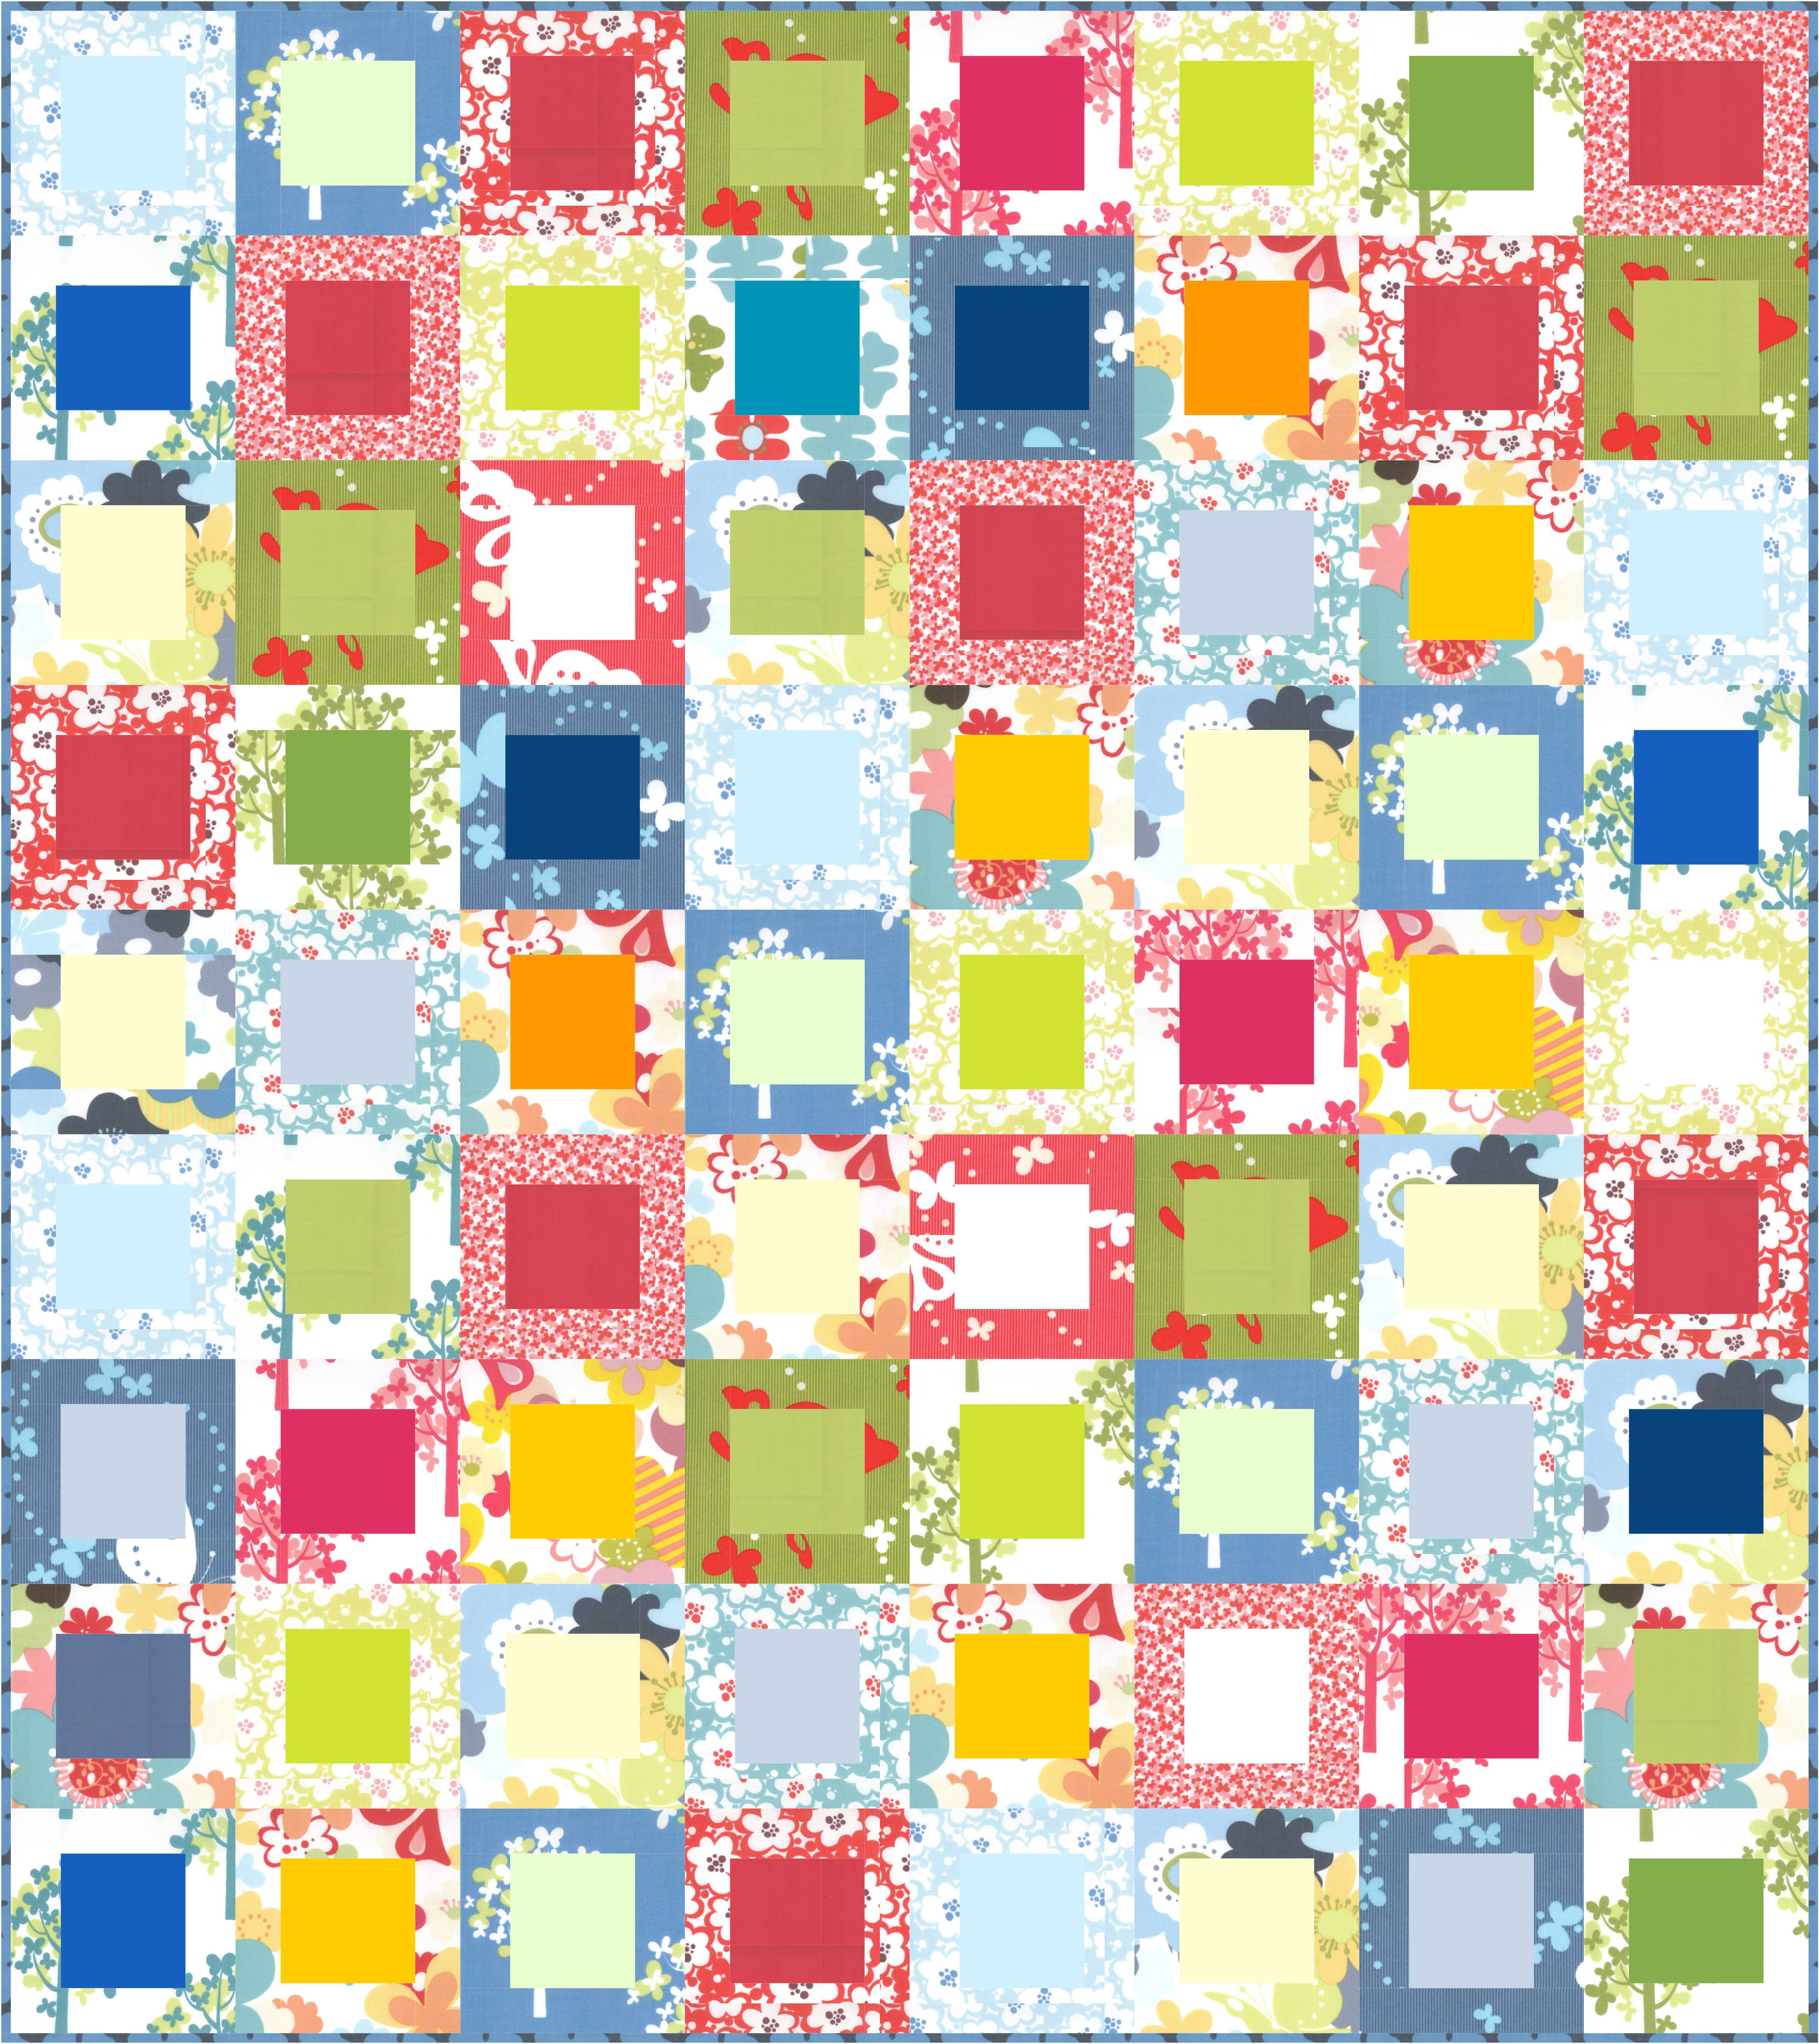 Cherry house quilts color by using a simple block such as the log cabin both the prints and the solids have a chance to shine the prints are busy but solids are calming the nvjuhfo Images